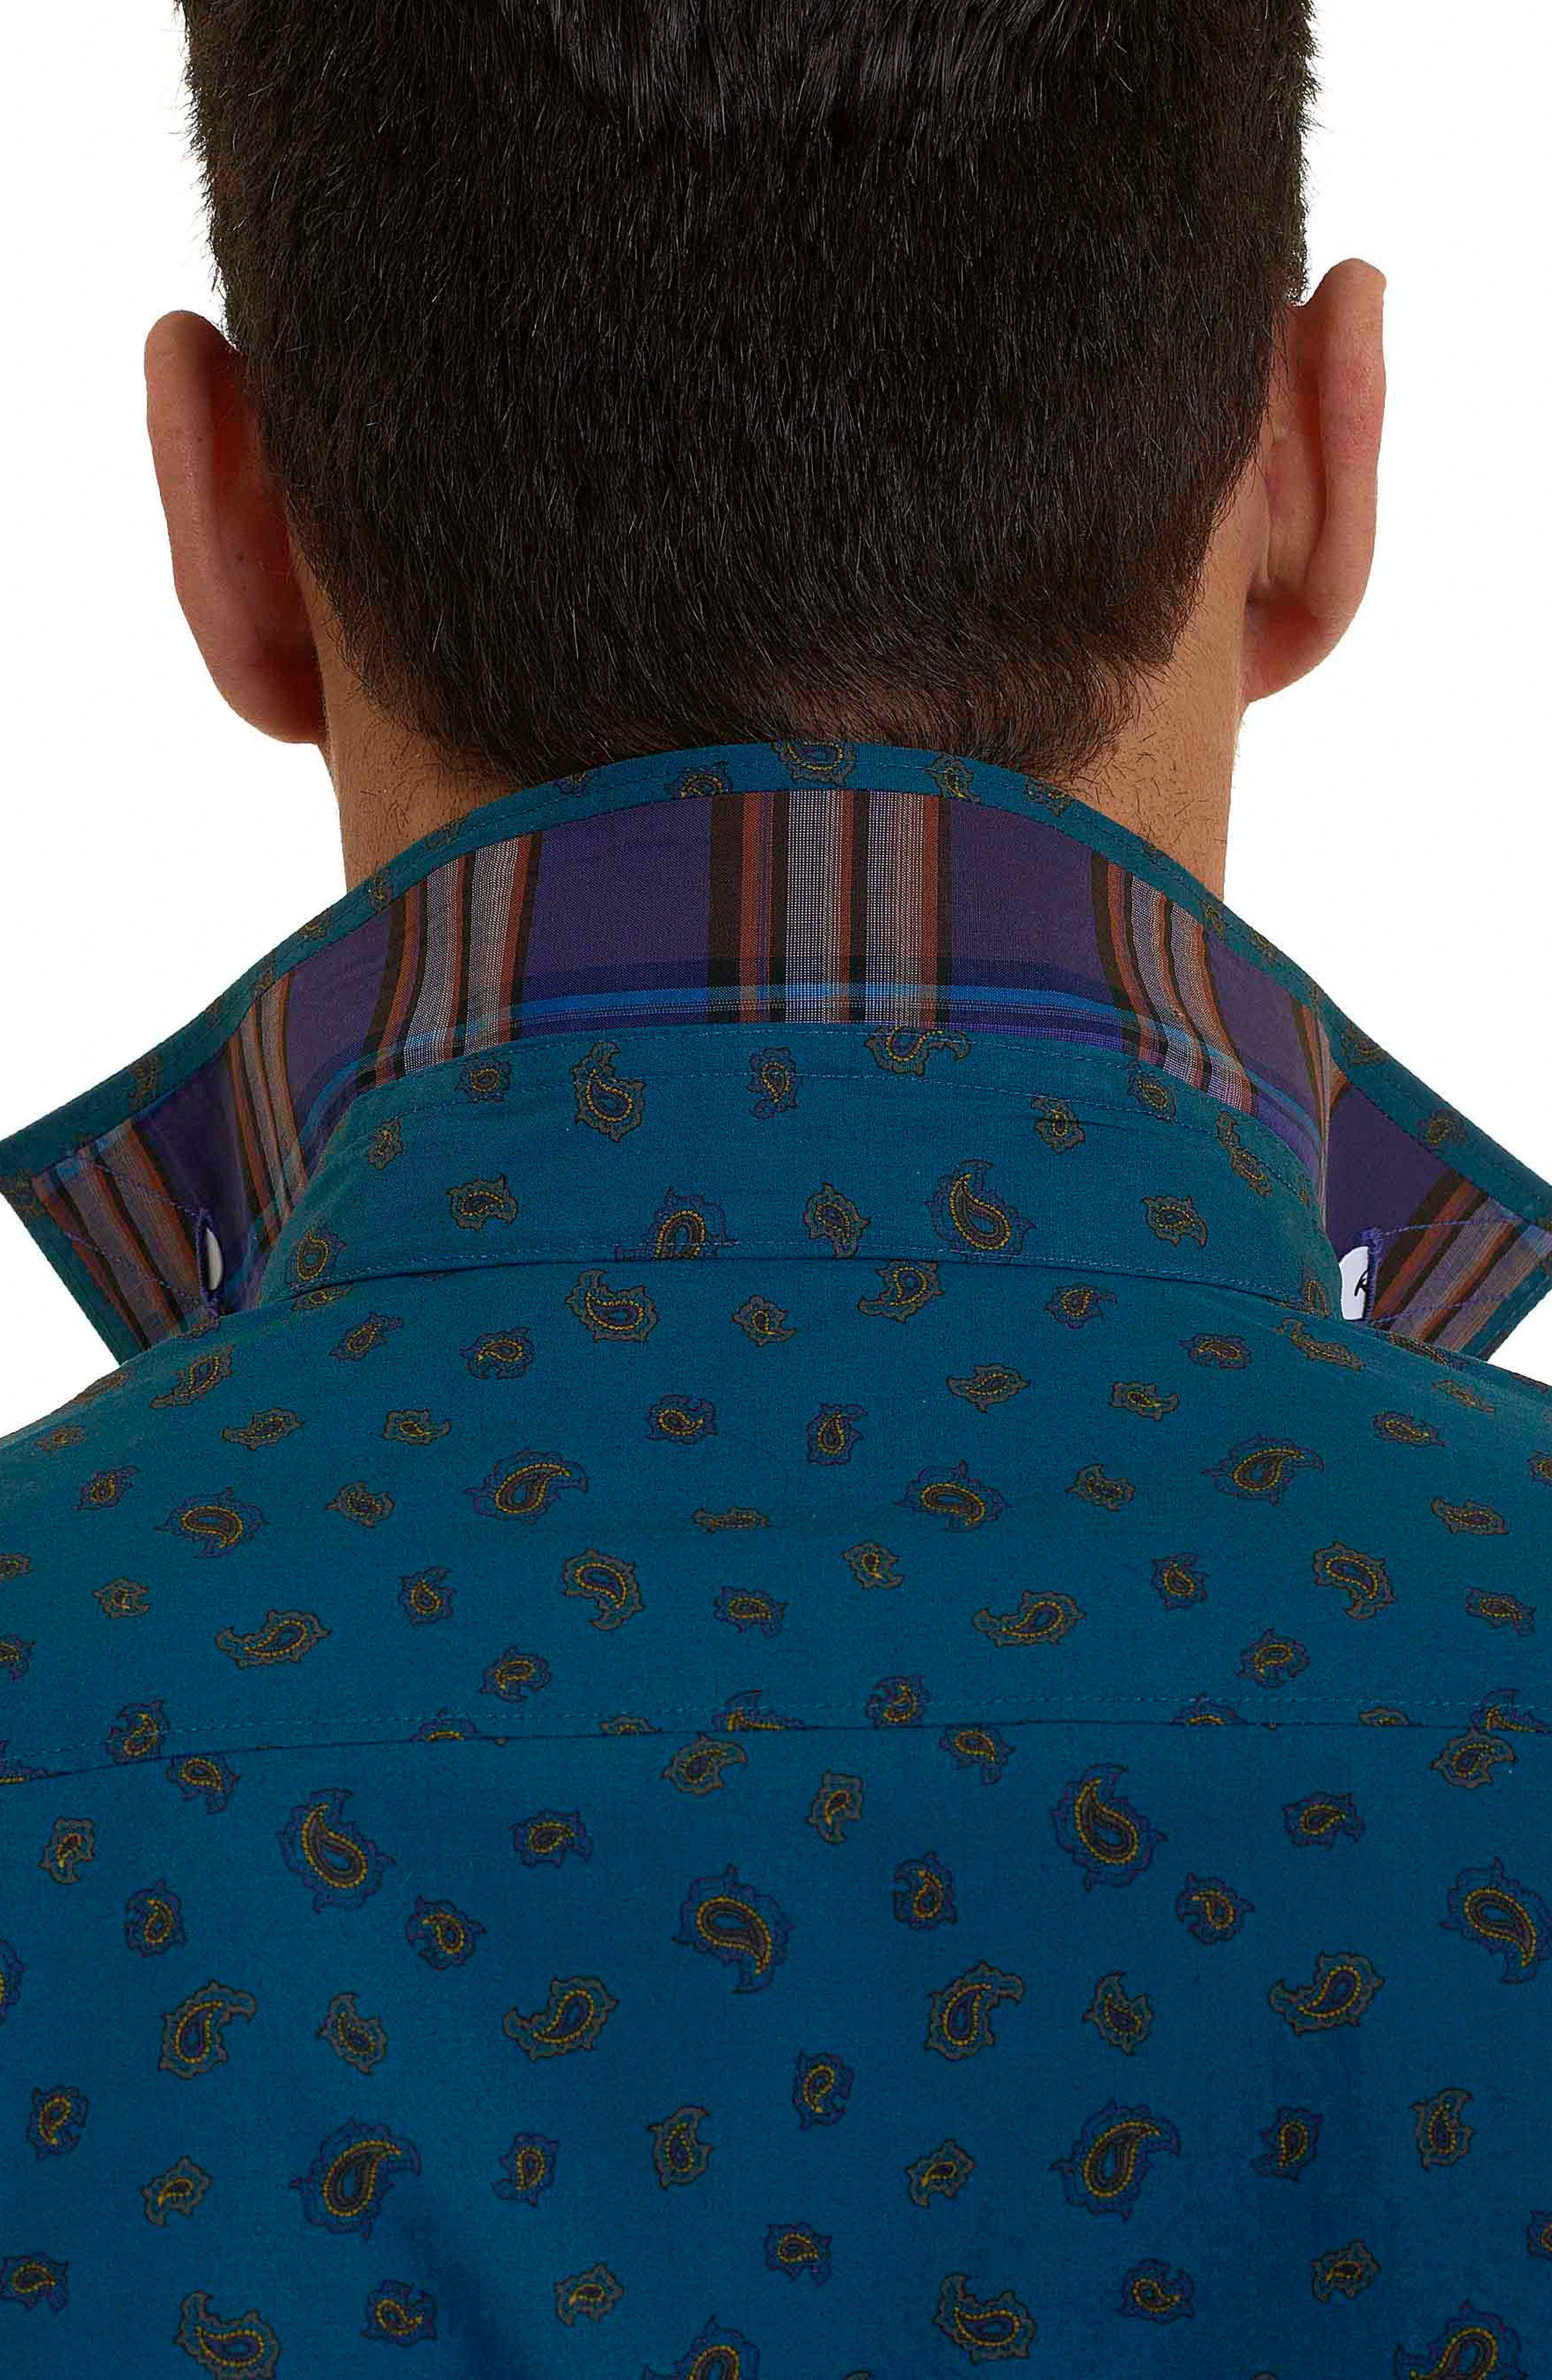 Cold Spring Classic Fit Paisley Sport Shirt,                             Alternate thumbnail 5, color,                             463